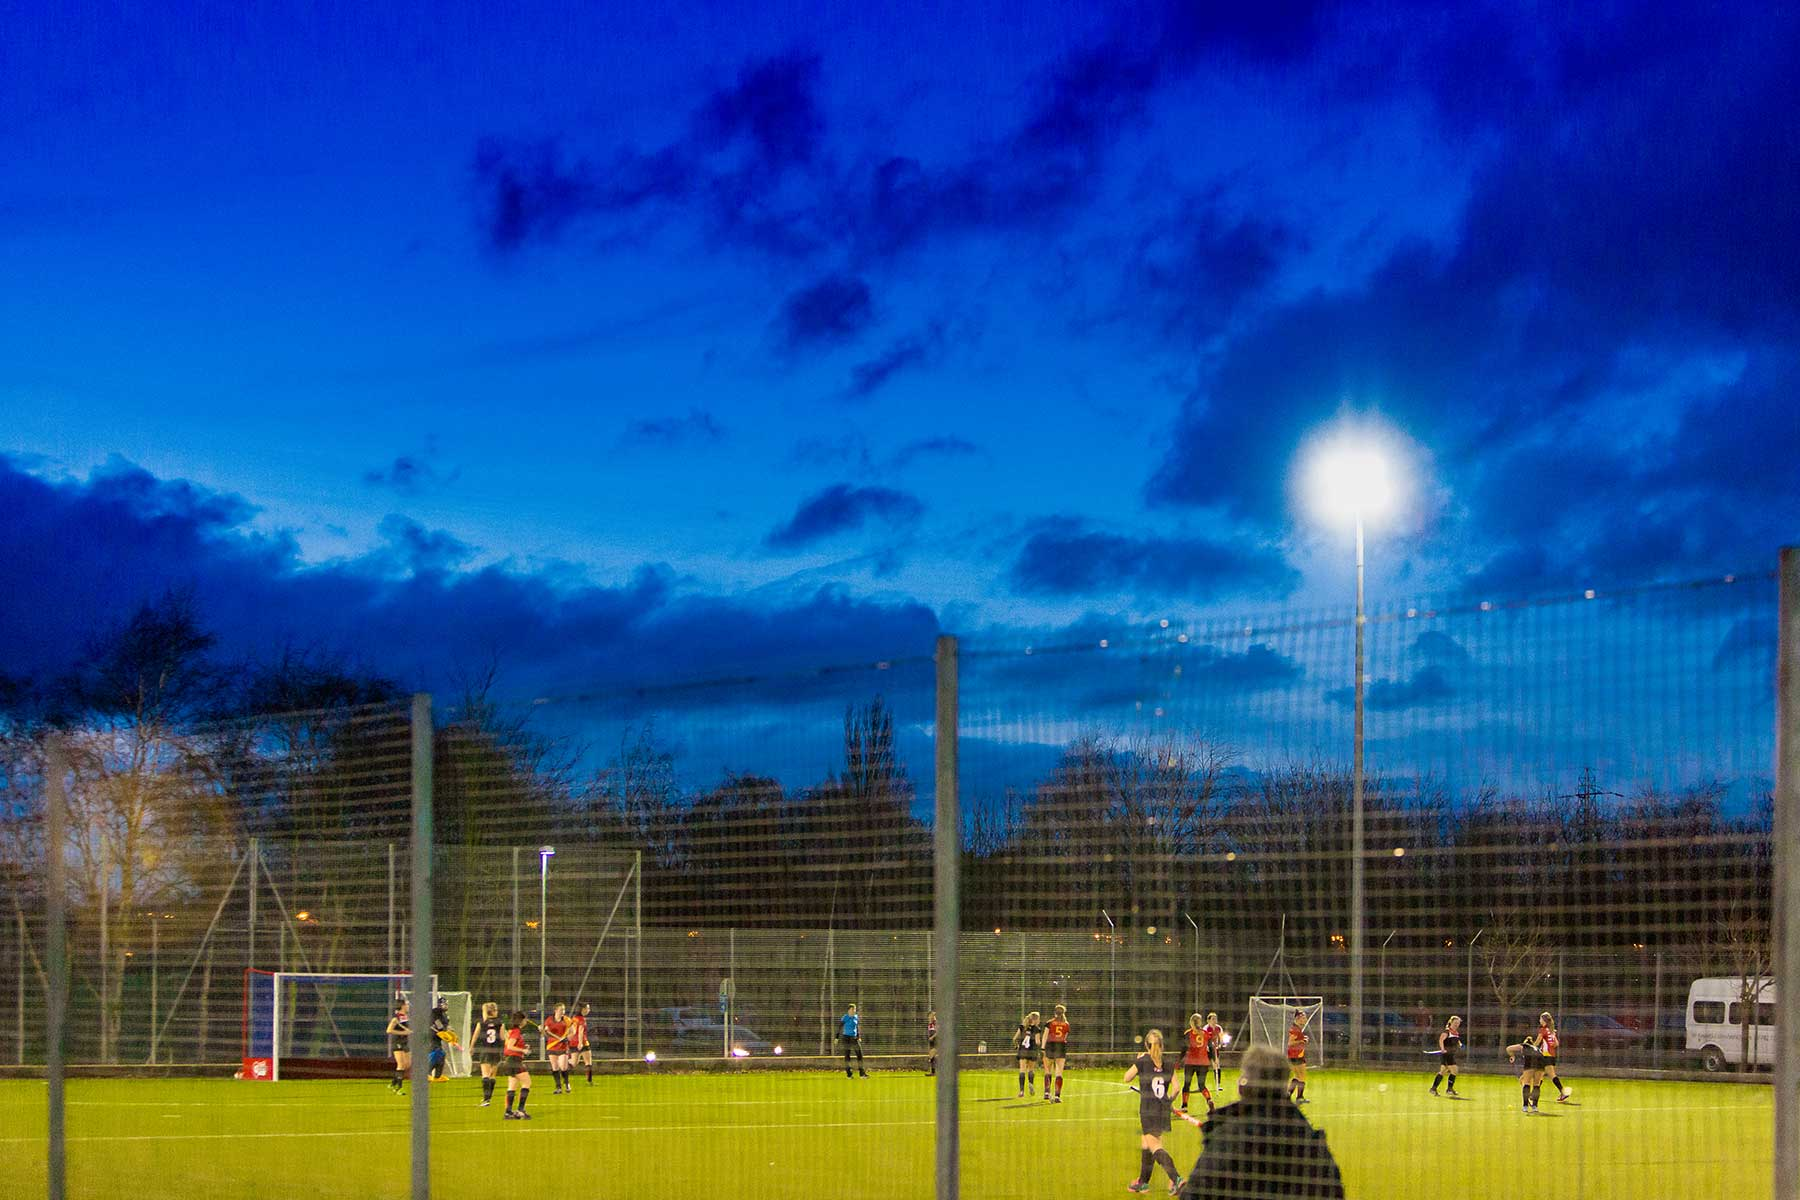 Chester's floodlit astro-turf pitch